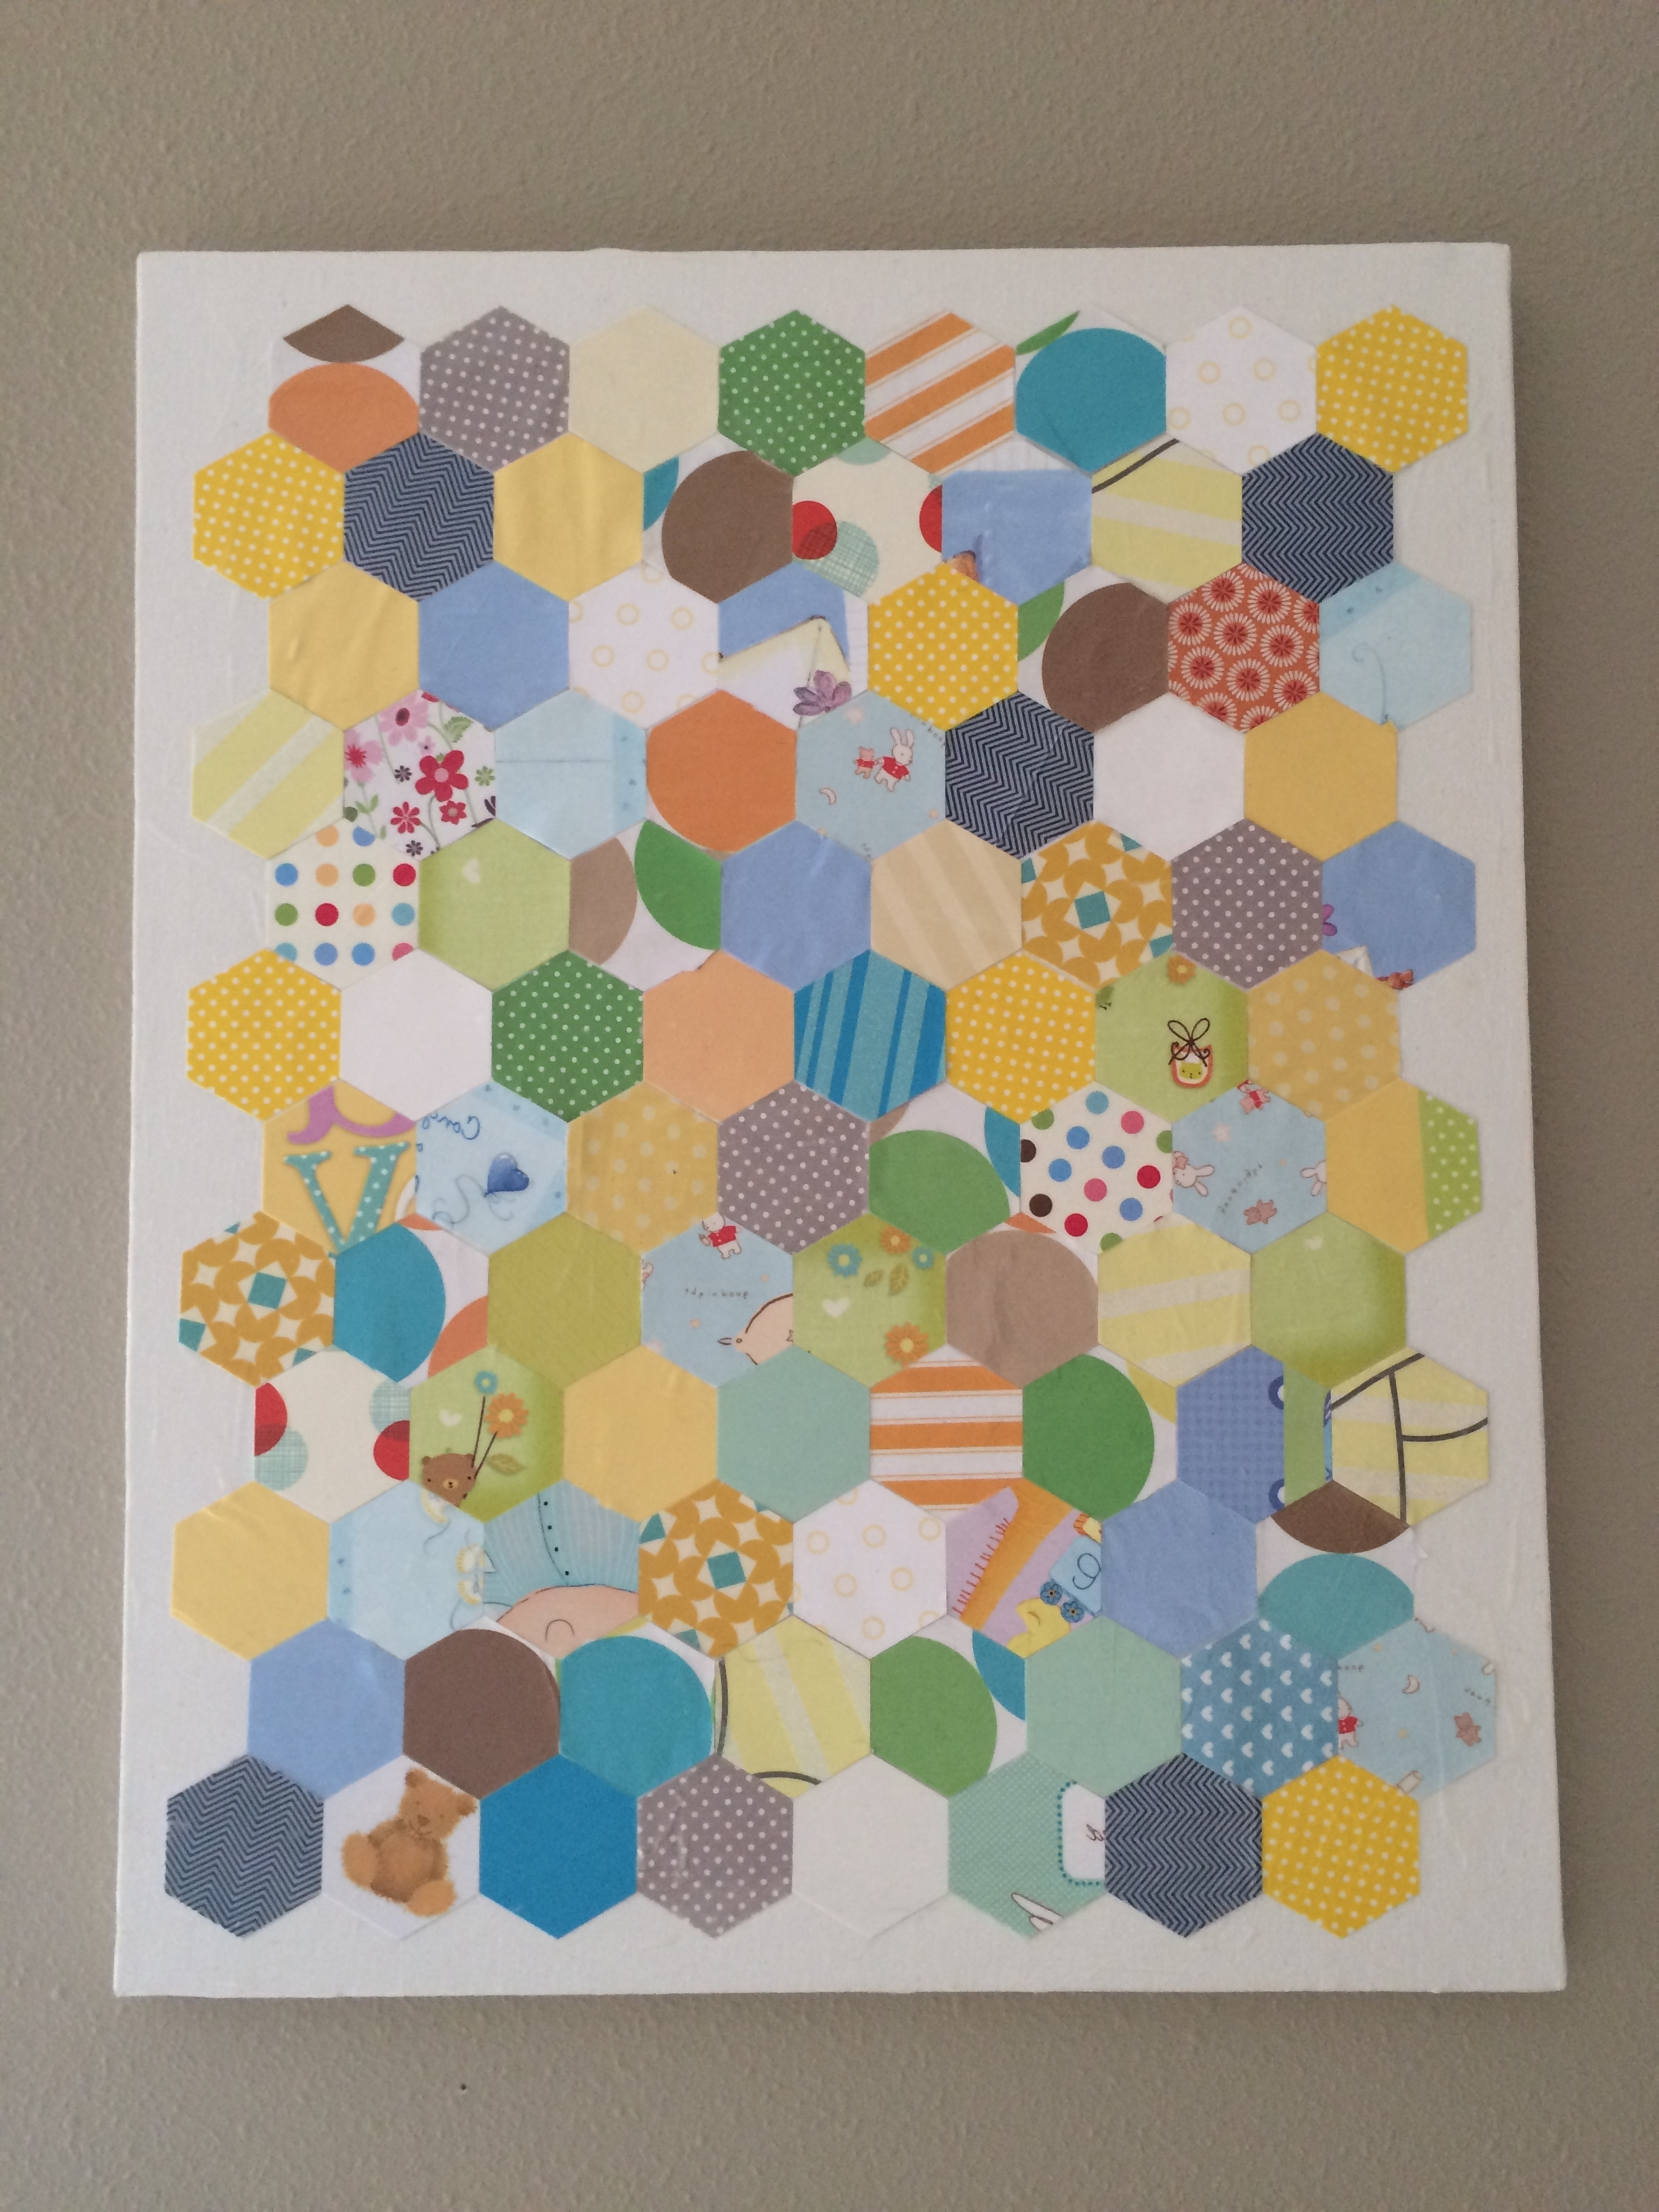 2018 Fresh Nursery Wall Art Ideas: Decoupage, Glue, Sew And Staple Throughout Decoupage Wall Art (View 9 of 15)